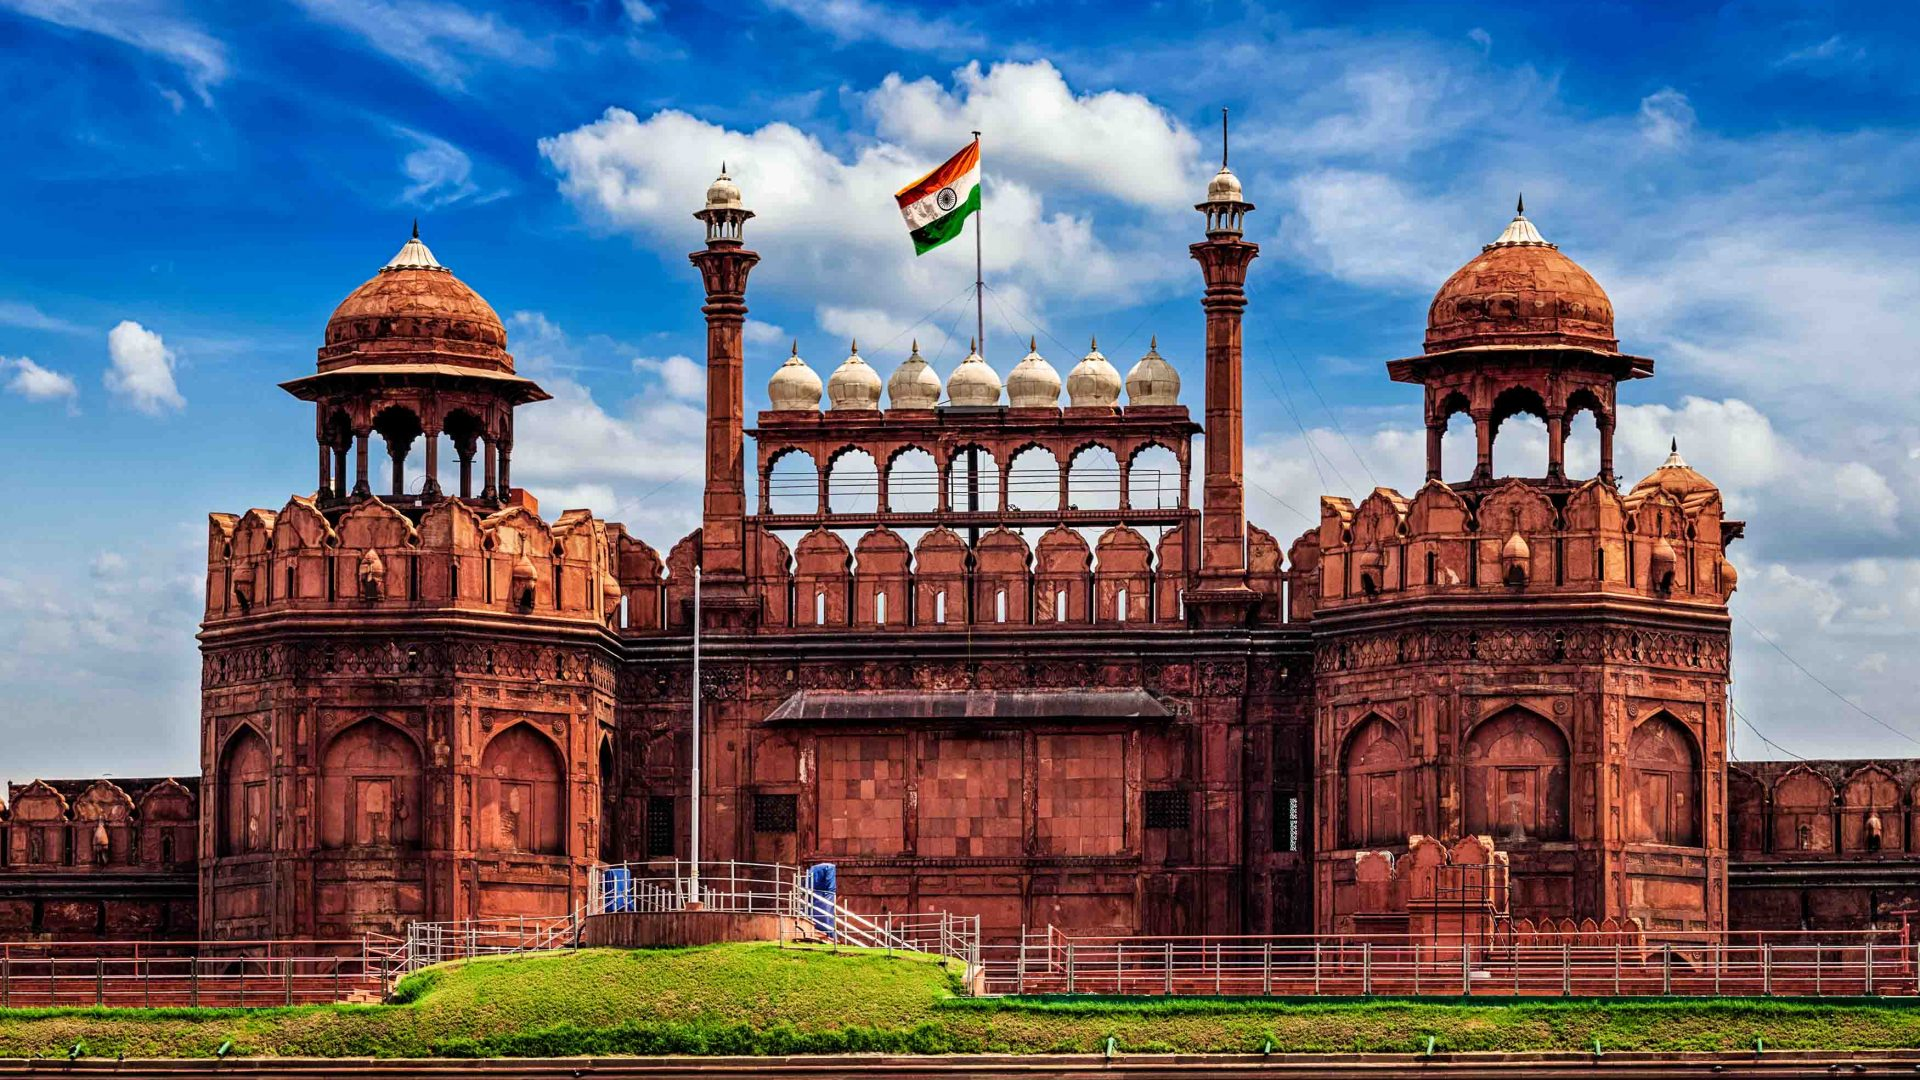 Partition at 70: The Indian flag sits proud atop the Red Fort in Delhi, India.